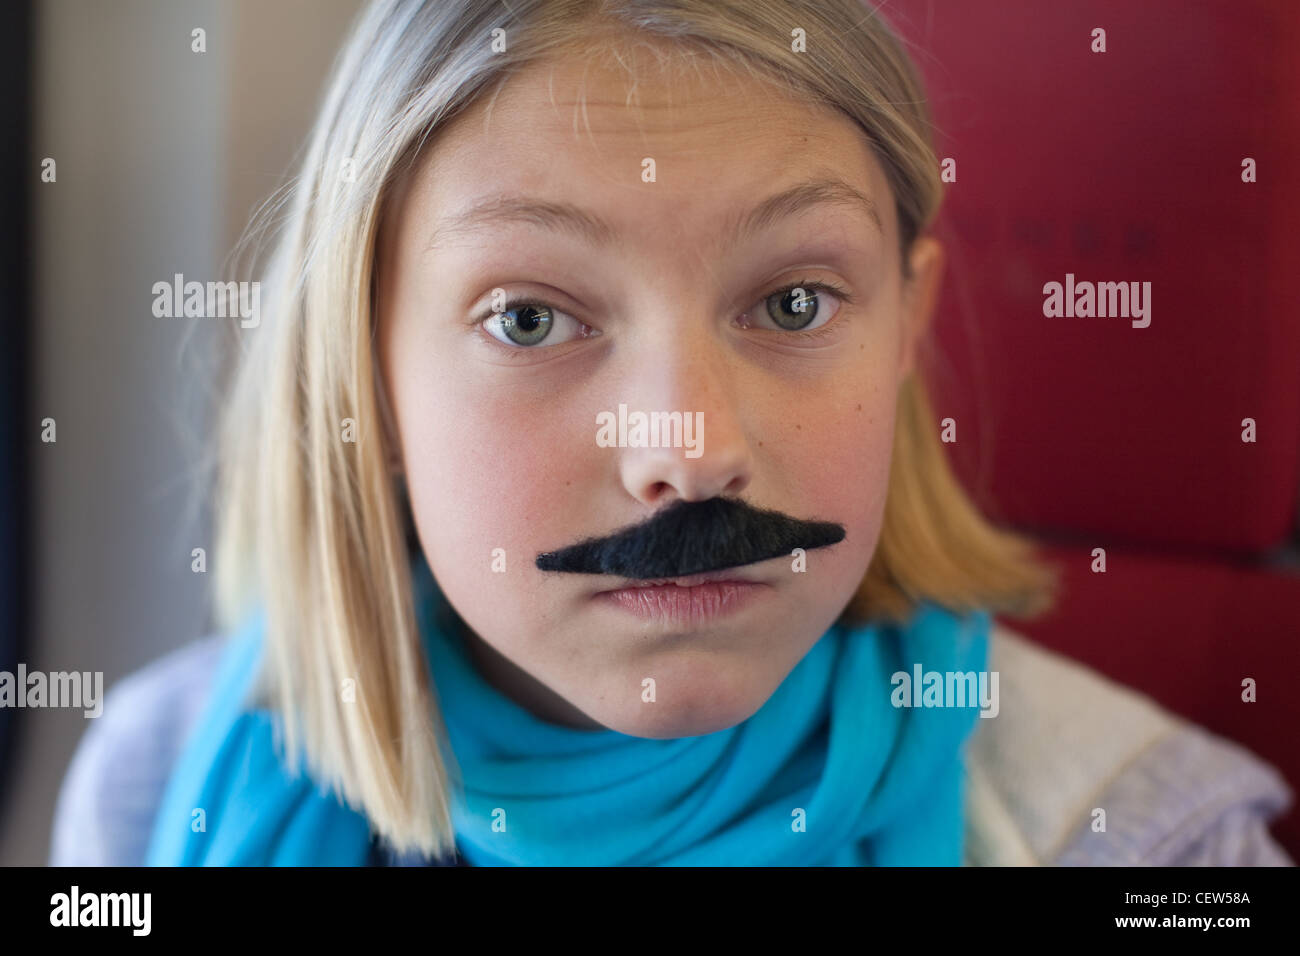 Girl with fake mustache making a silly face - Stock Image